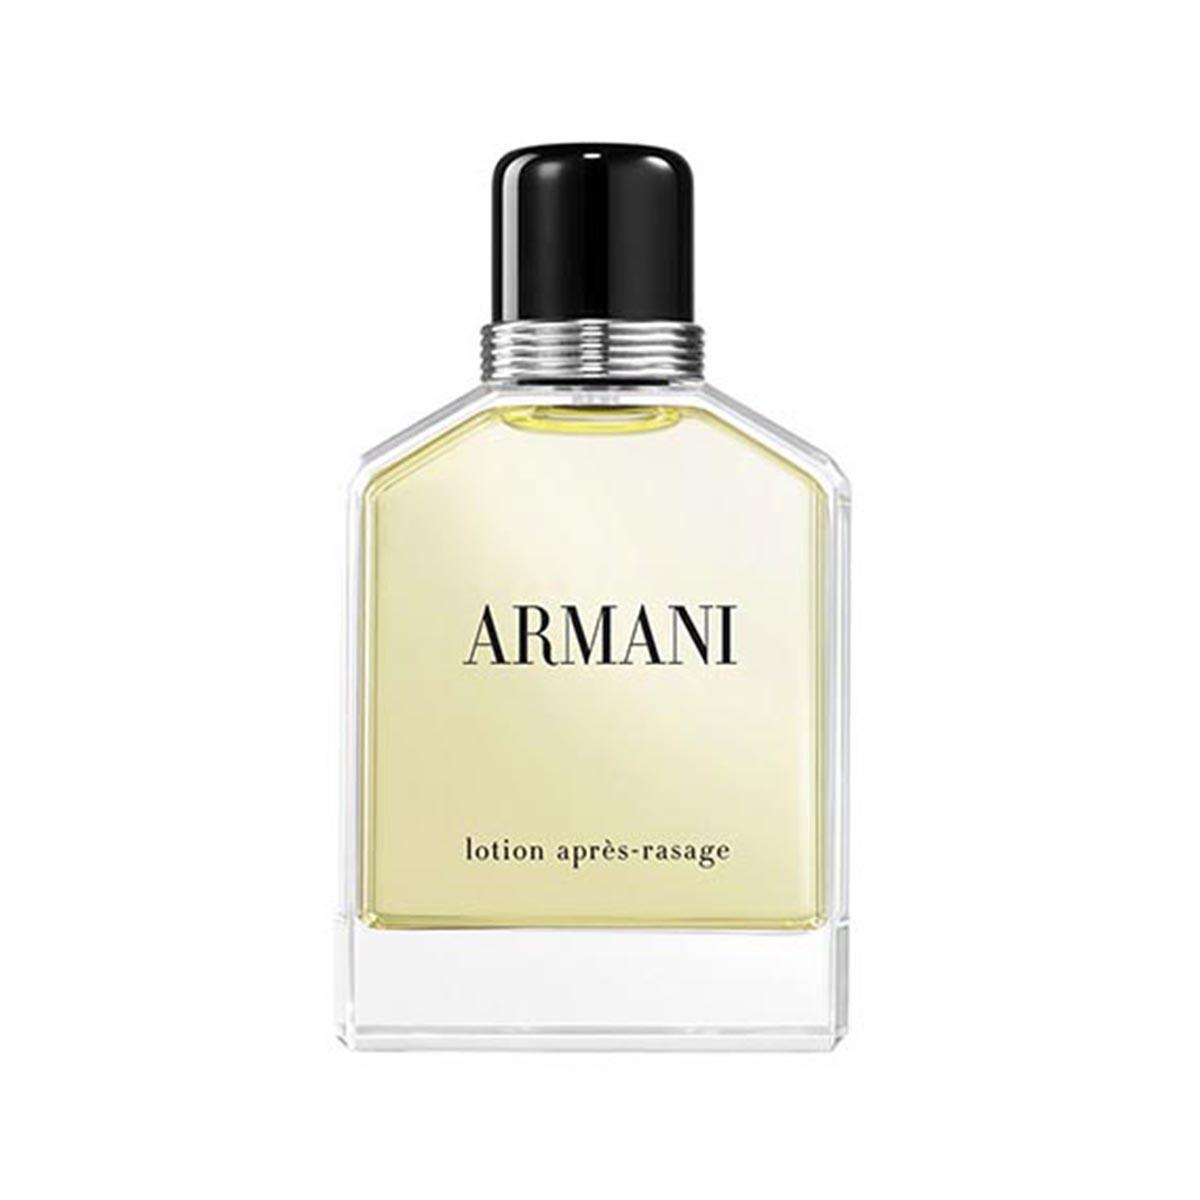 Giorgio armani Pour Homme After Shave Lotion 100 ml